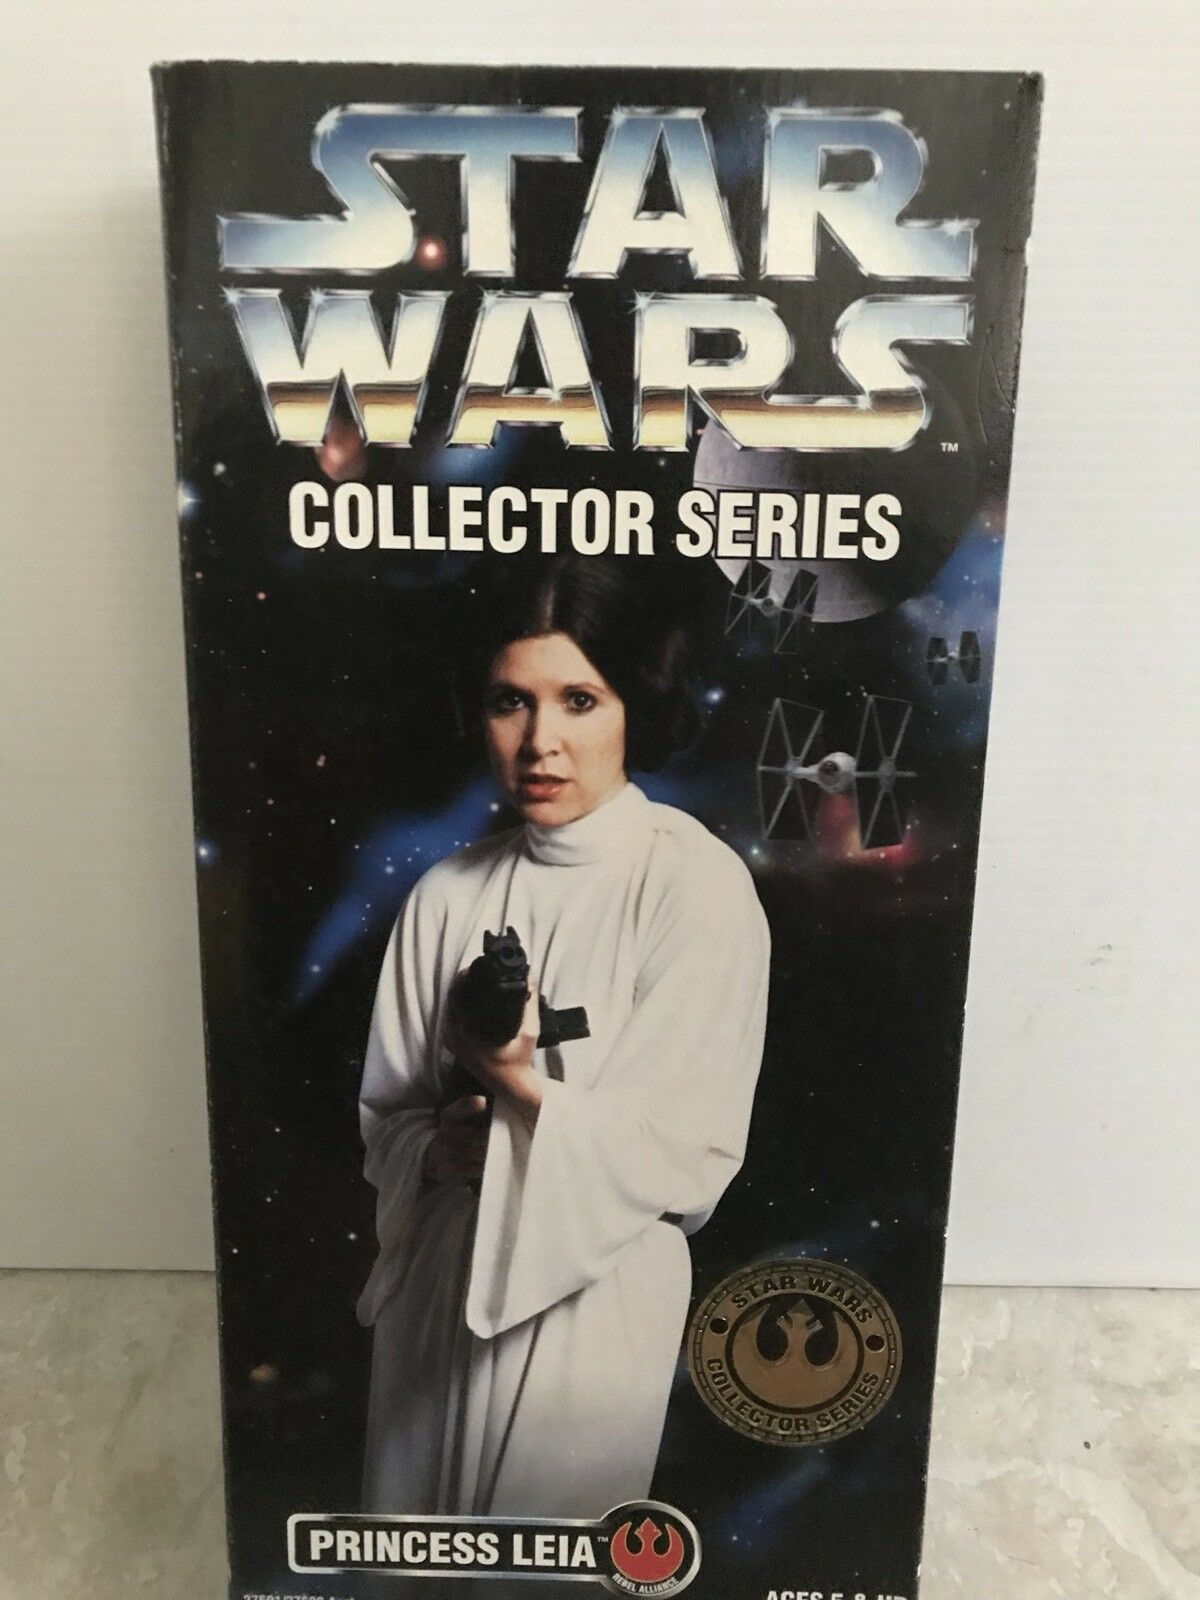 Star Wars Collector Series Princess Leia Leia Leia 12  Doll by Kenner 22be0d